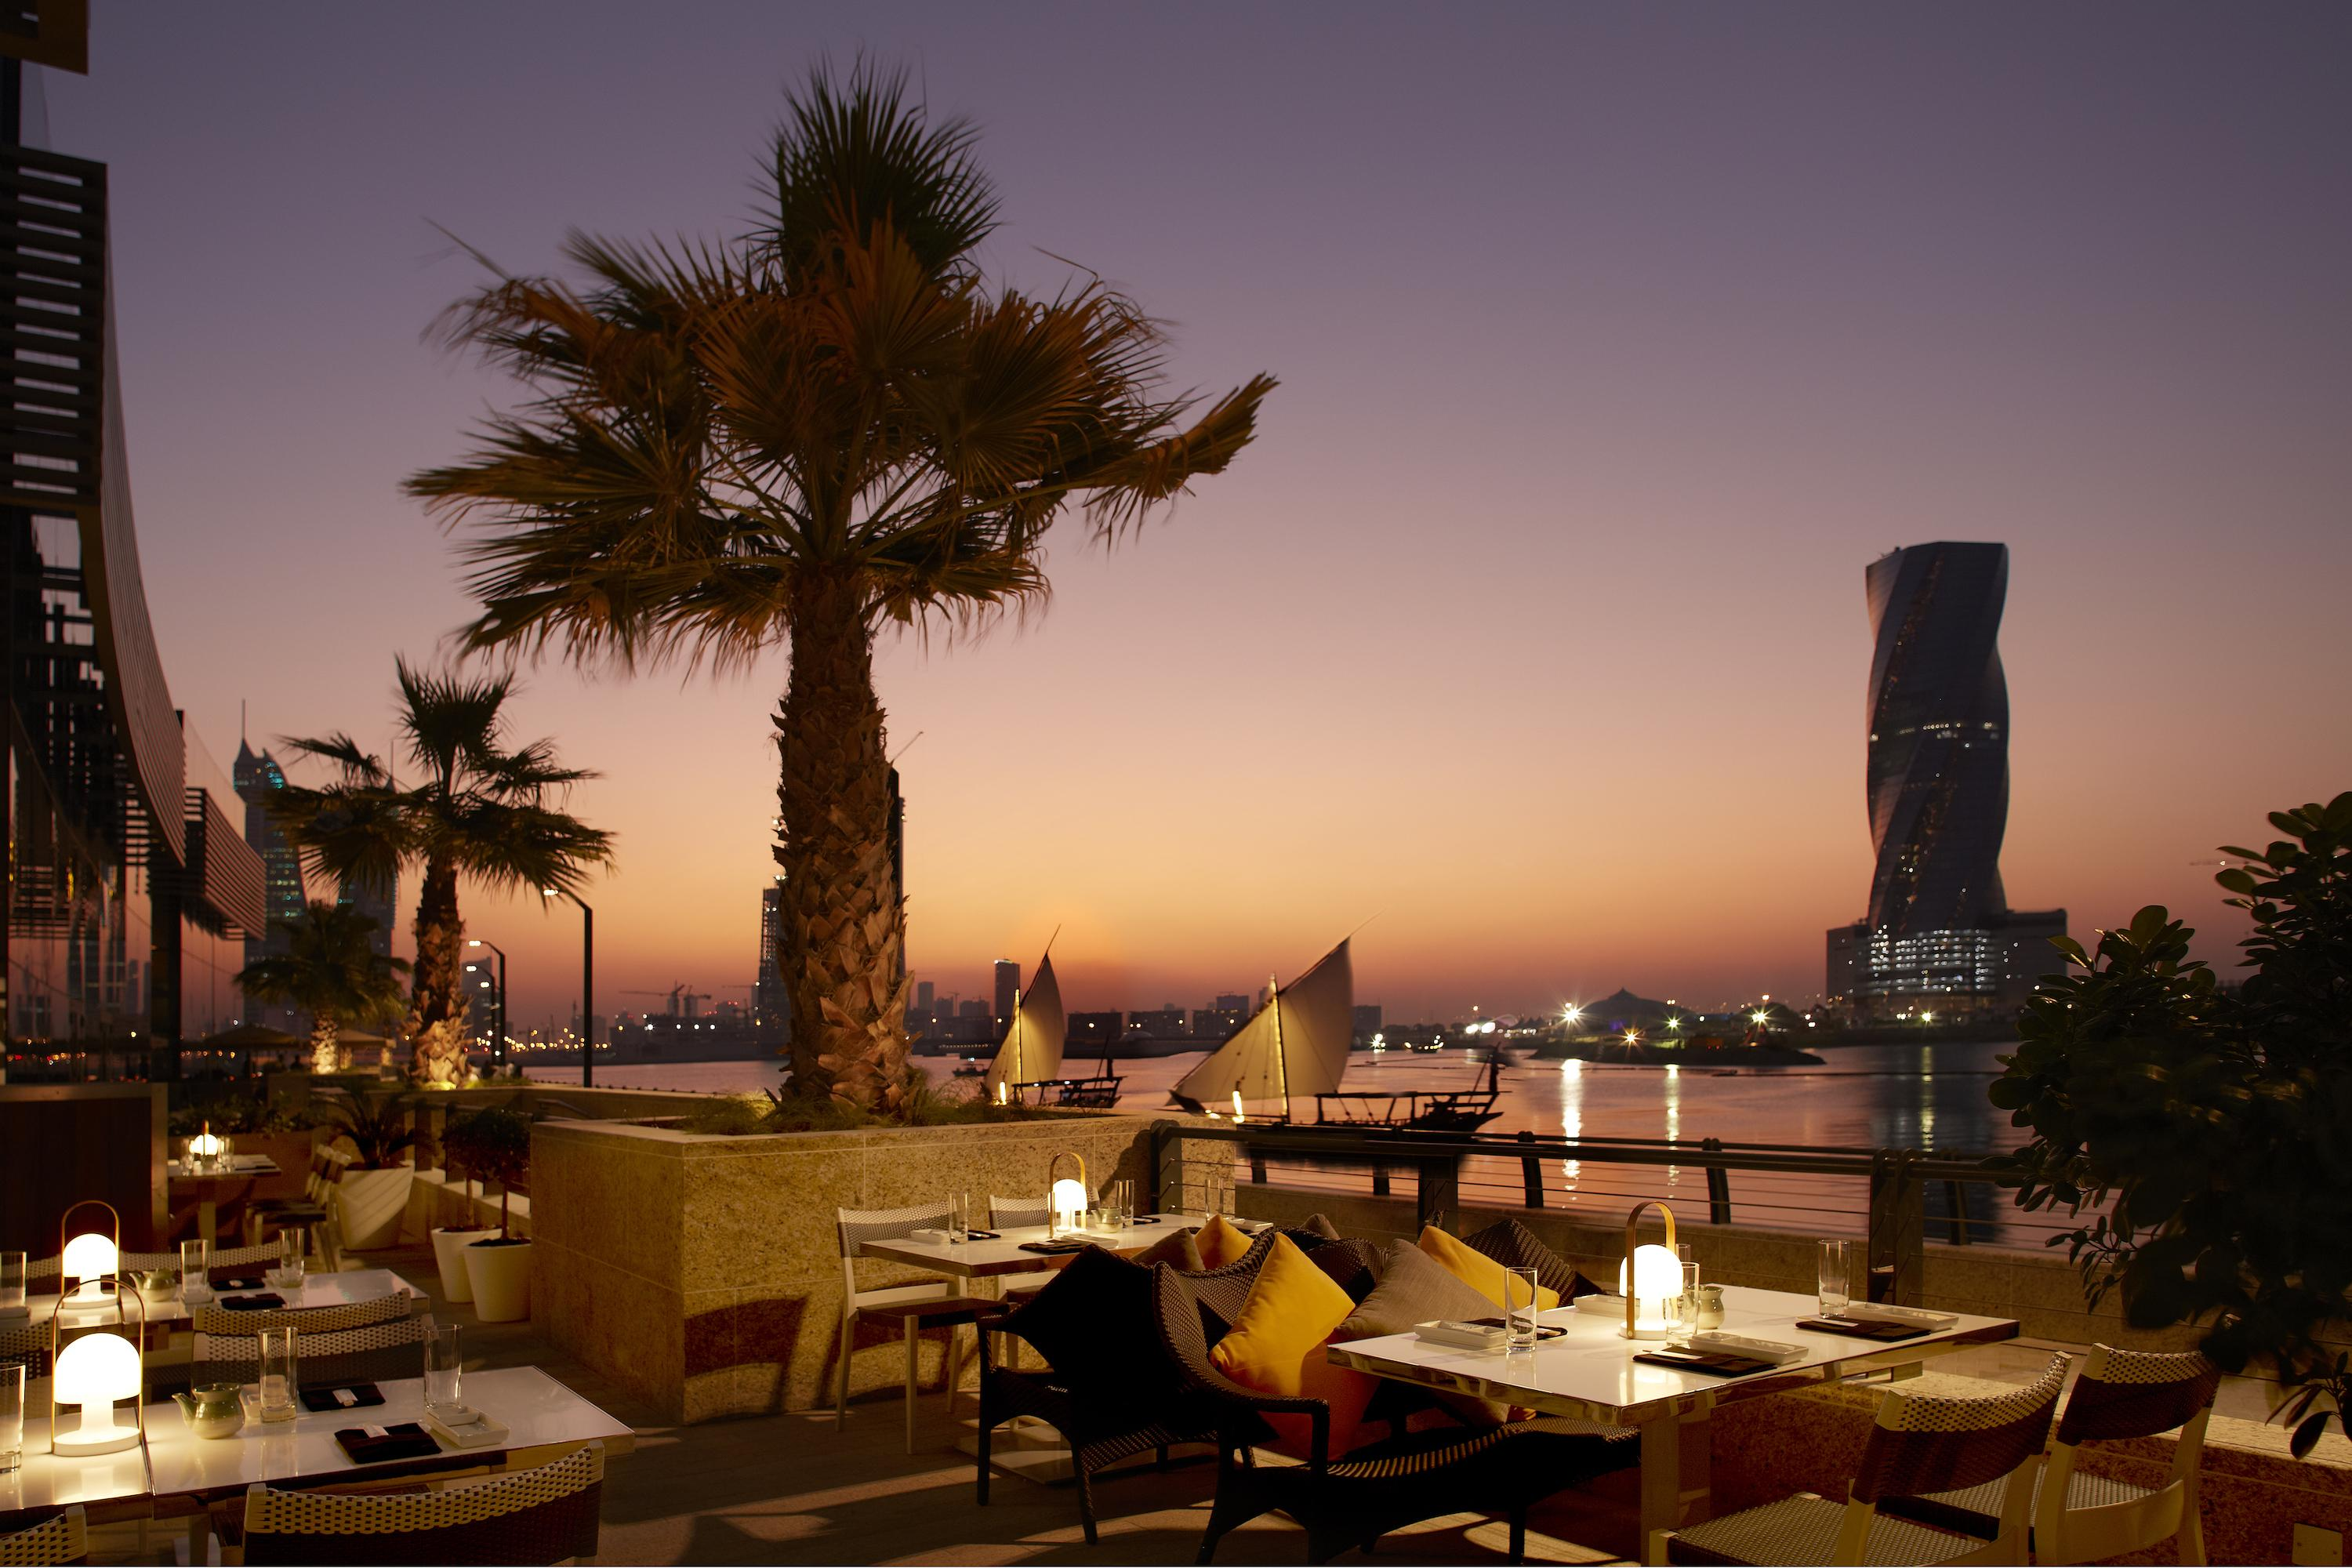 katsuya bahrain patio overlooking the ocean with palm trees and candle lit tables